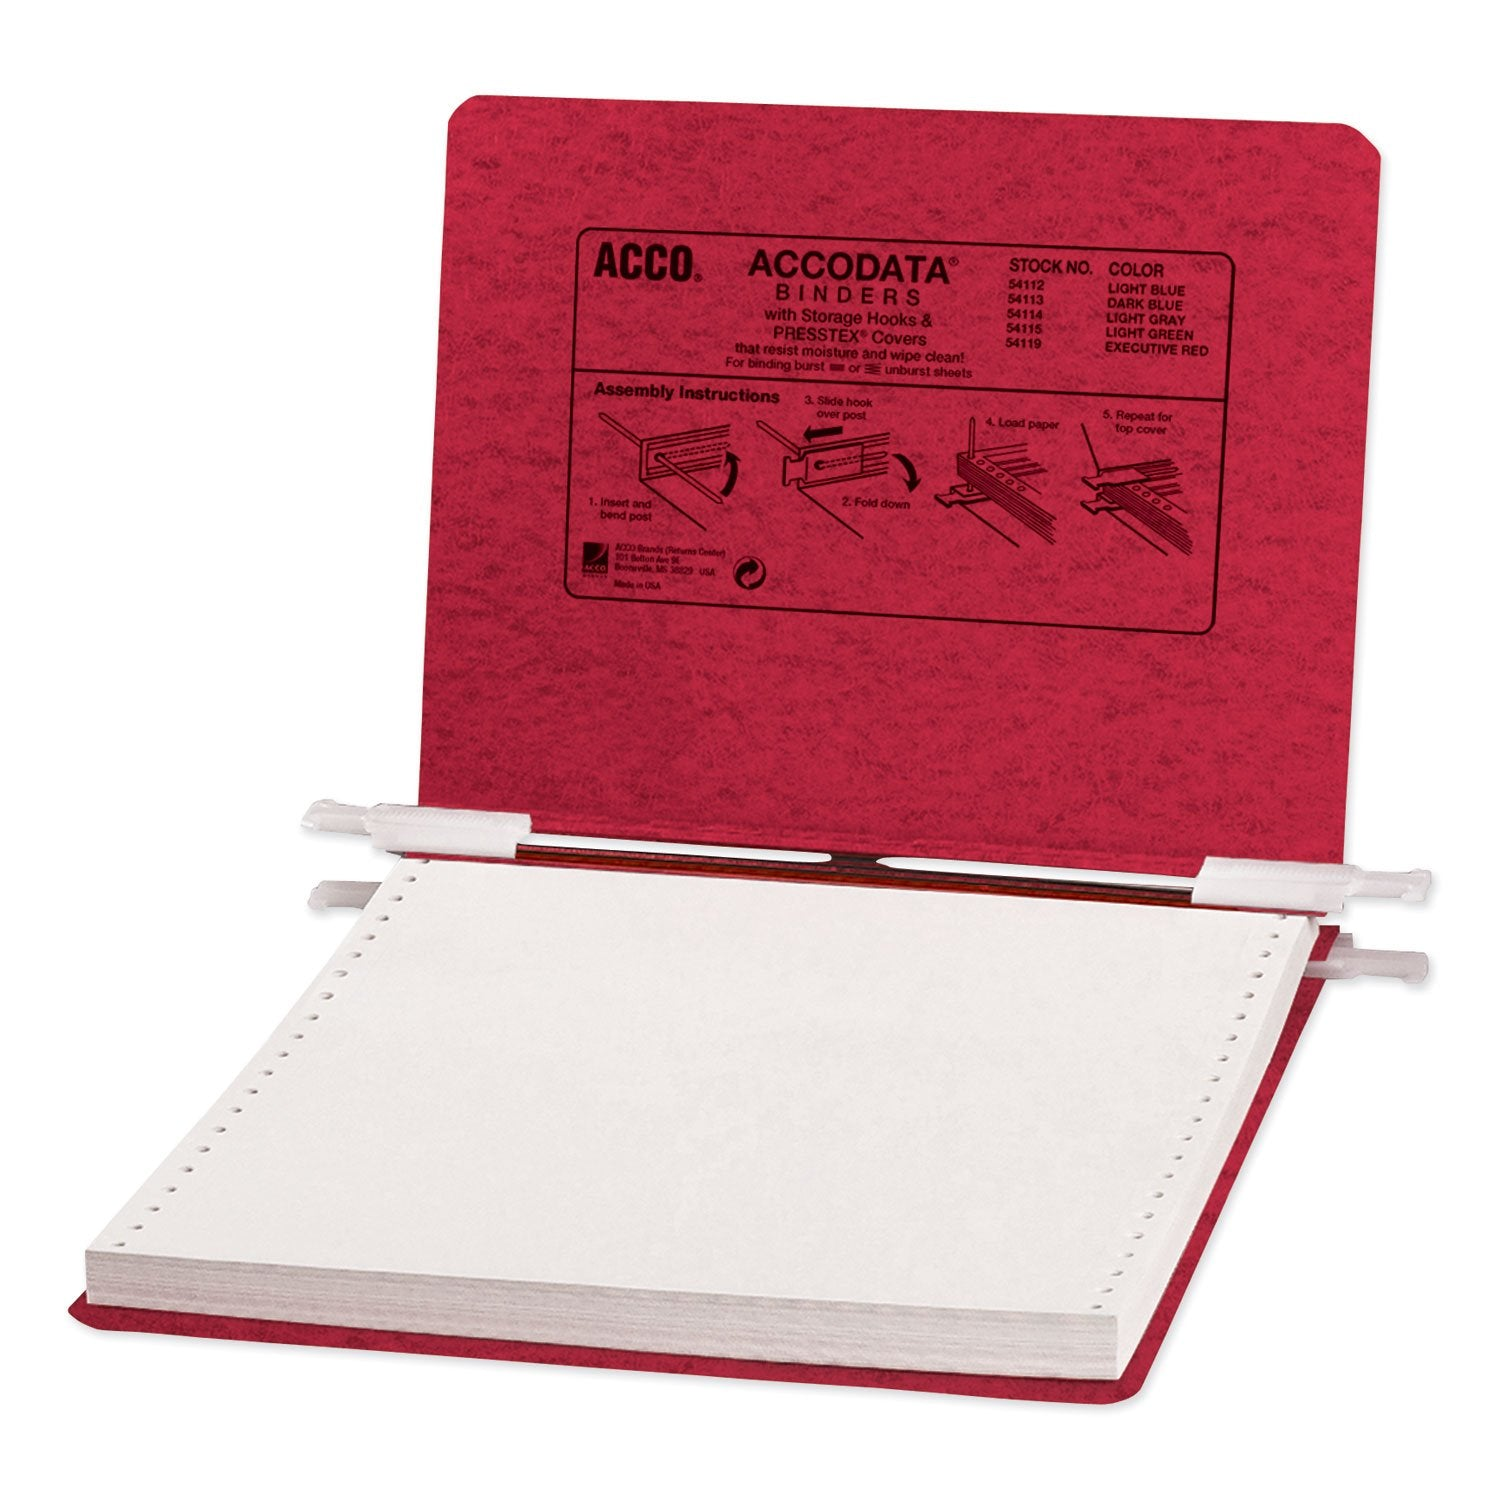 "ACCO PRESSTEX Covers with Storage Hooks, 2 Posts, 6"" Capacity, 9.5 x 11, Executive Red"